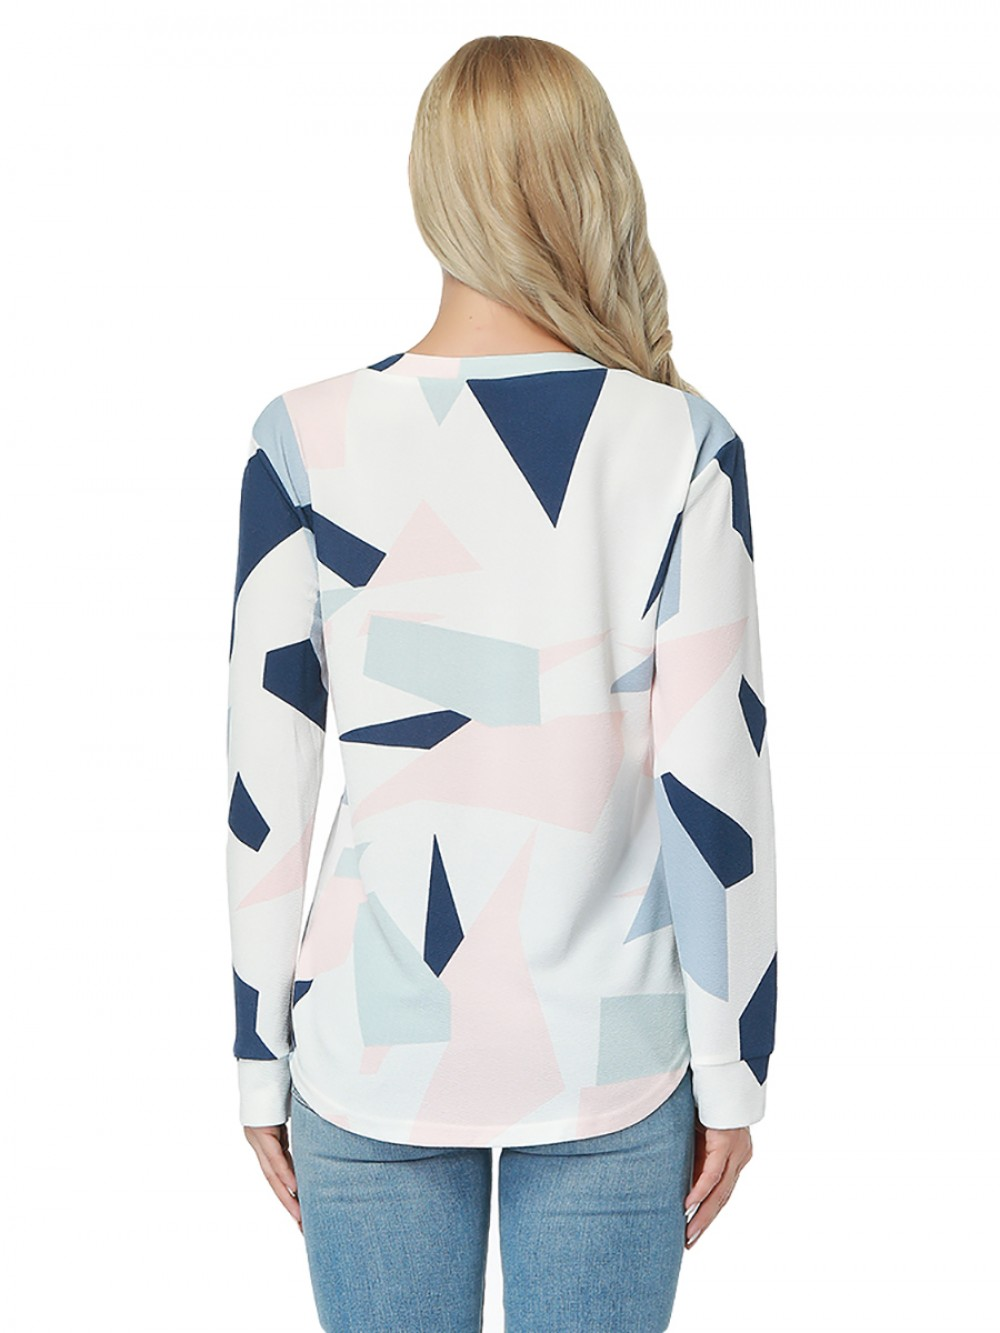 Mix Color Allover Geometric Printing Blouse Long Sleeves